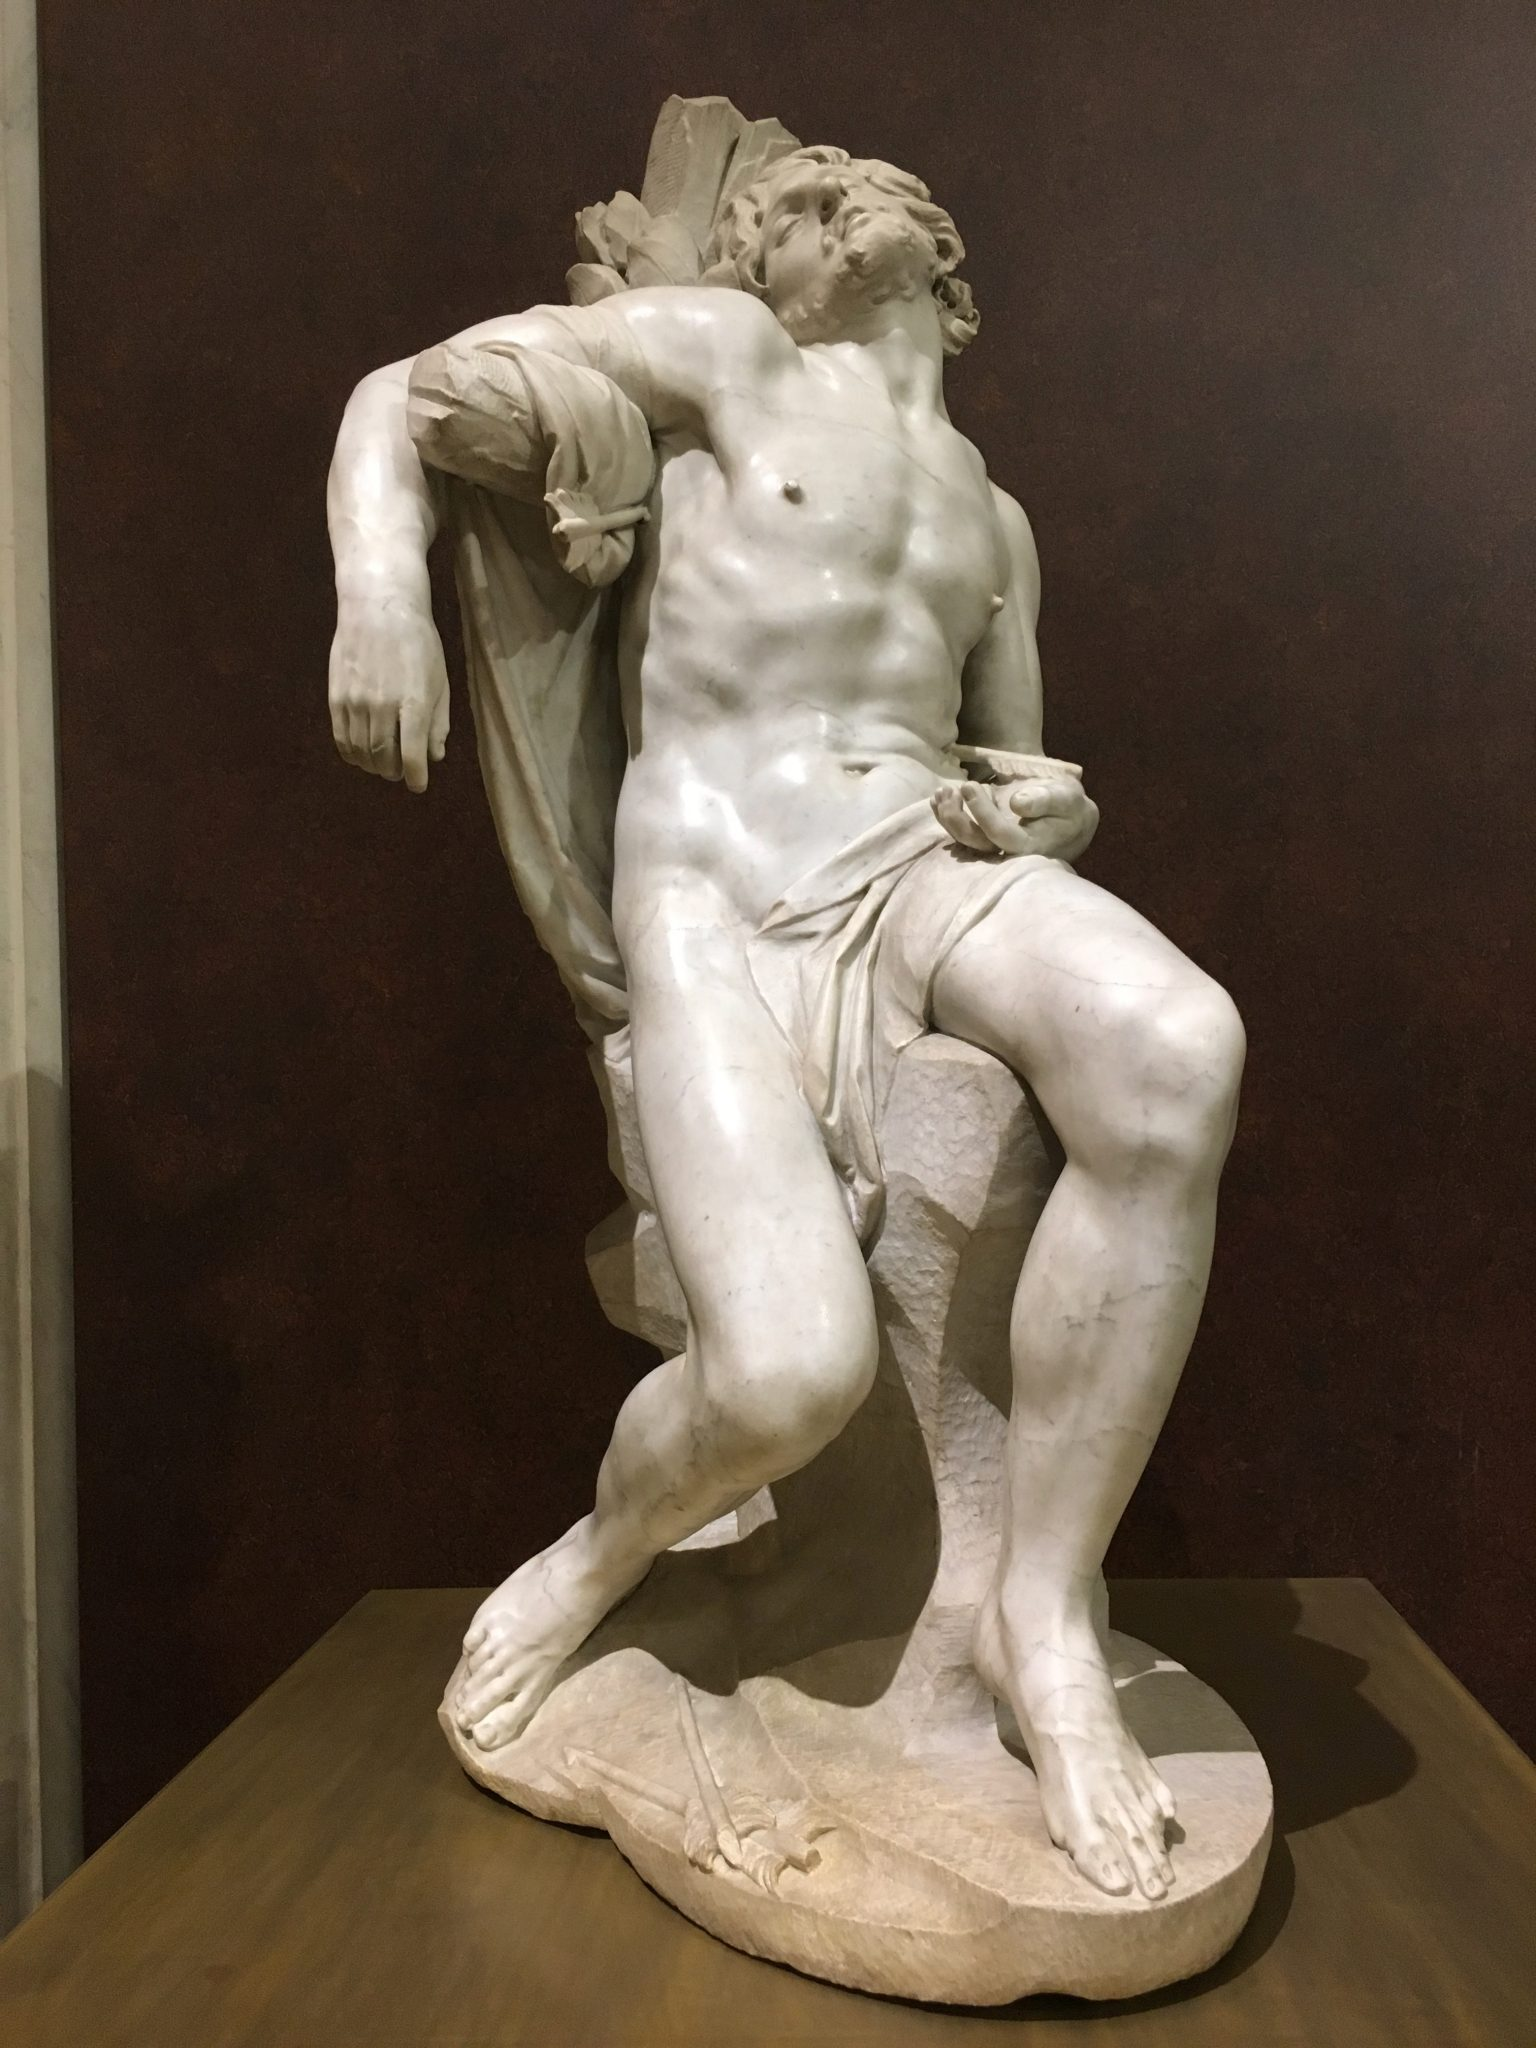 The Bernini exhibition is an extensive and amazing